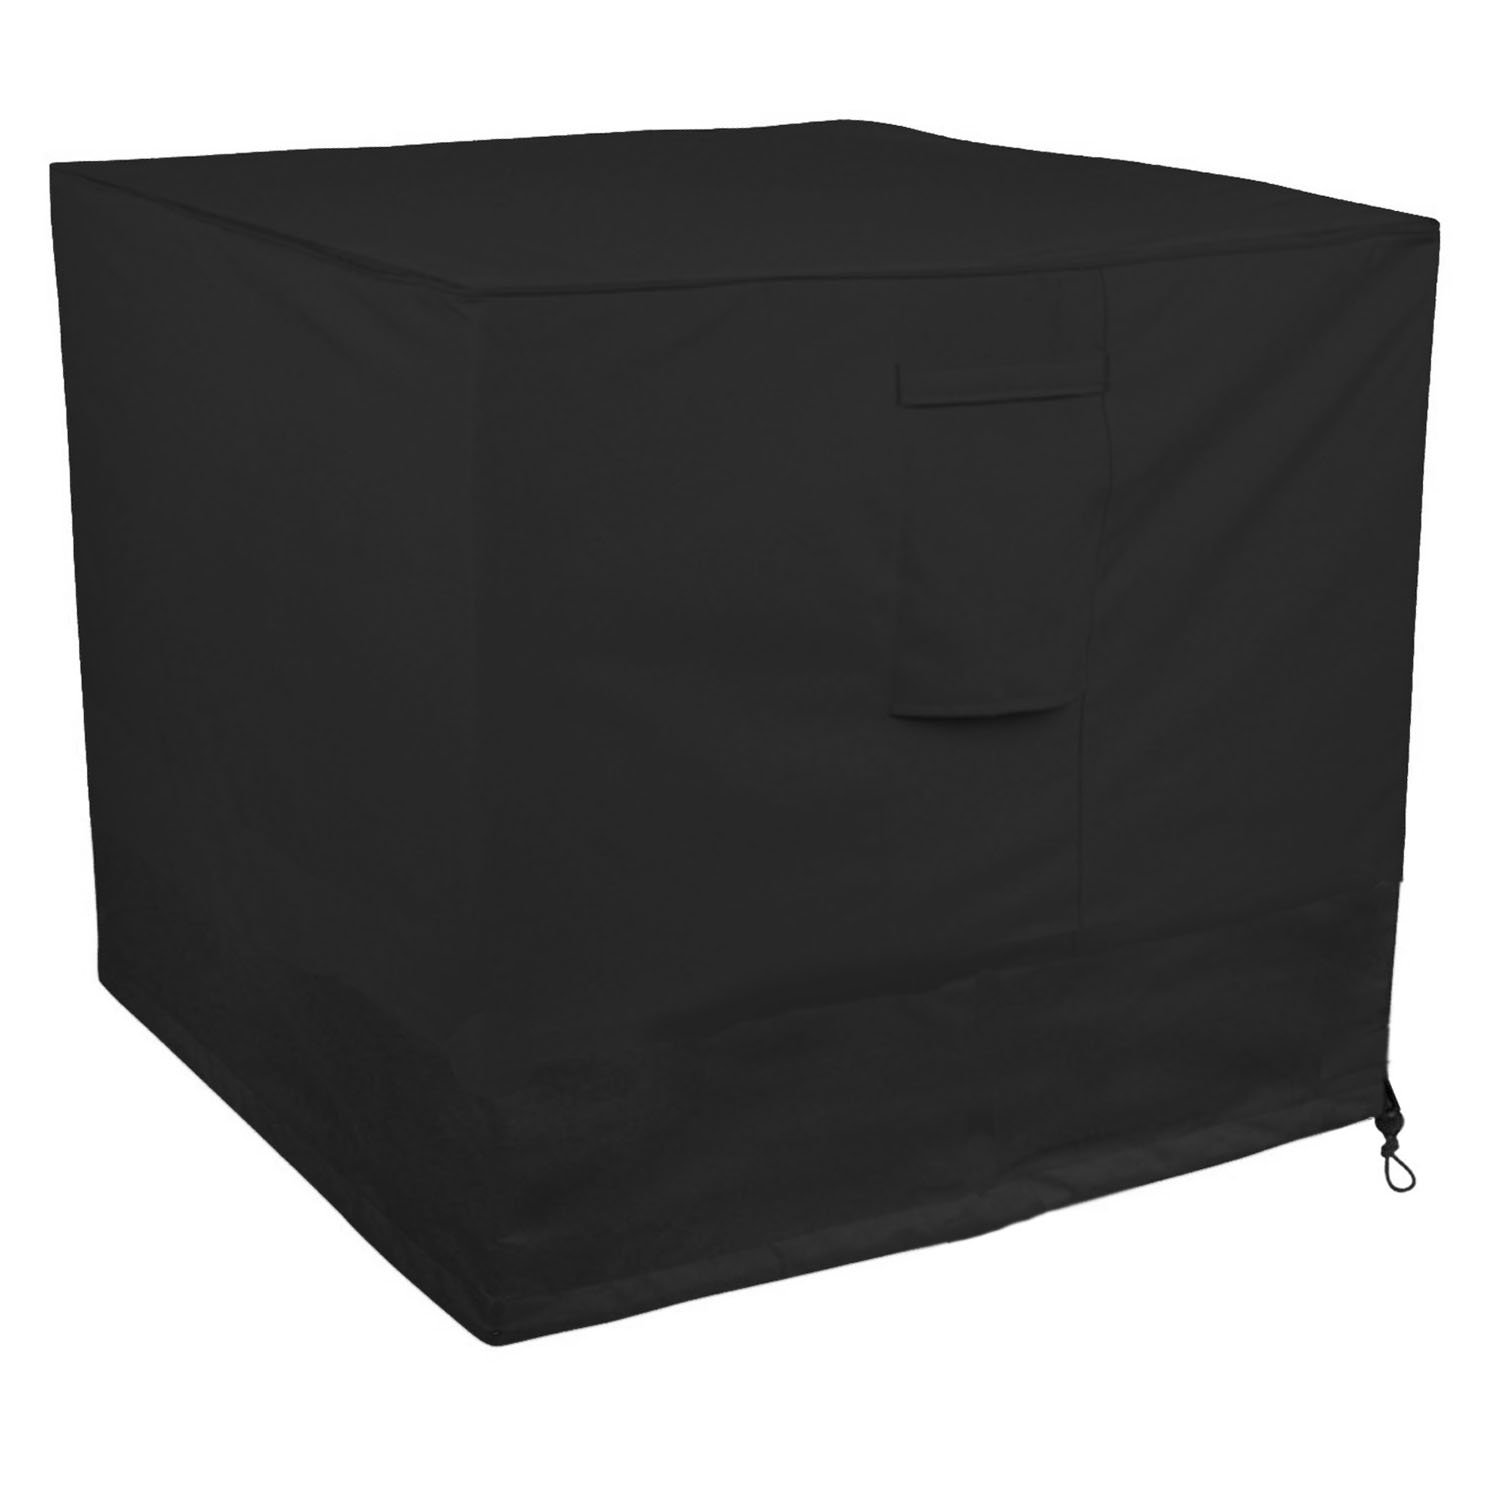 Little World Air Conditioner Cover Heavy Duty Large Universal Veranda AC Unit Cover for Standard American Furniture Central Air Conditioner Outdoor Vent Full Cover (Square) 34 x 34 x 30- inch, Black